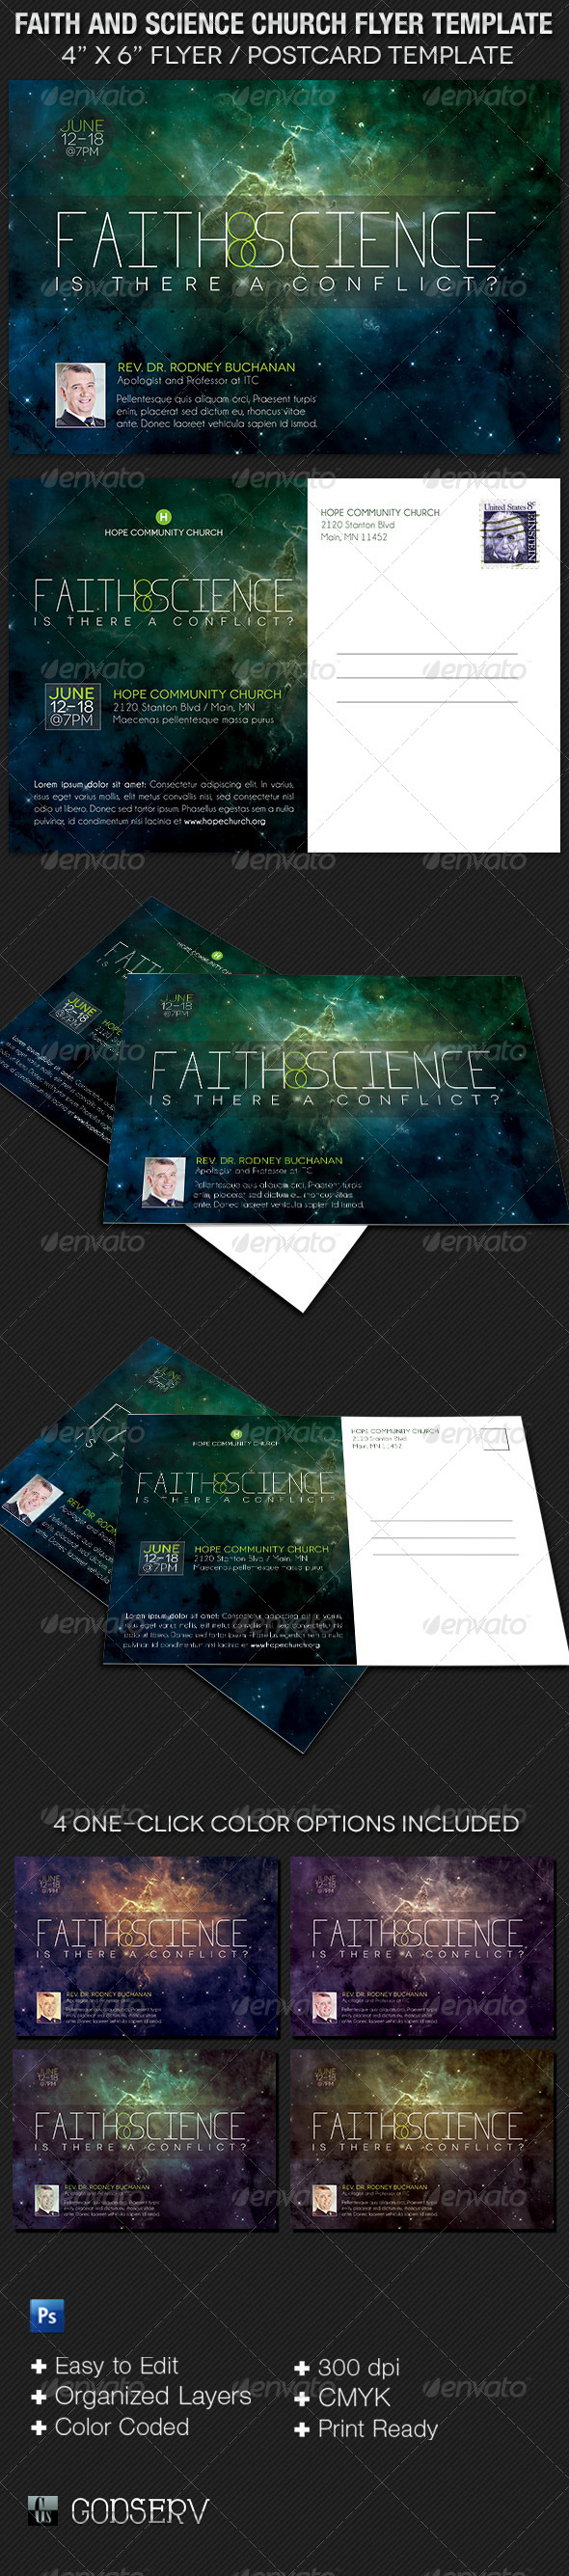 GraphicRiver Faith and Science Church Flyer Template 7890612